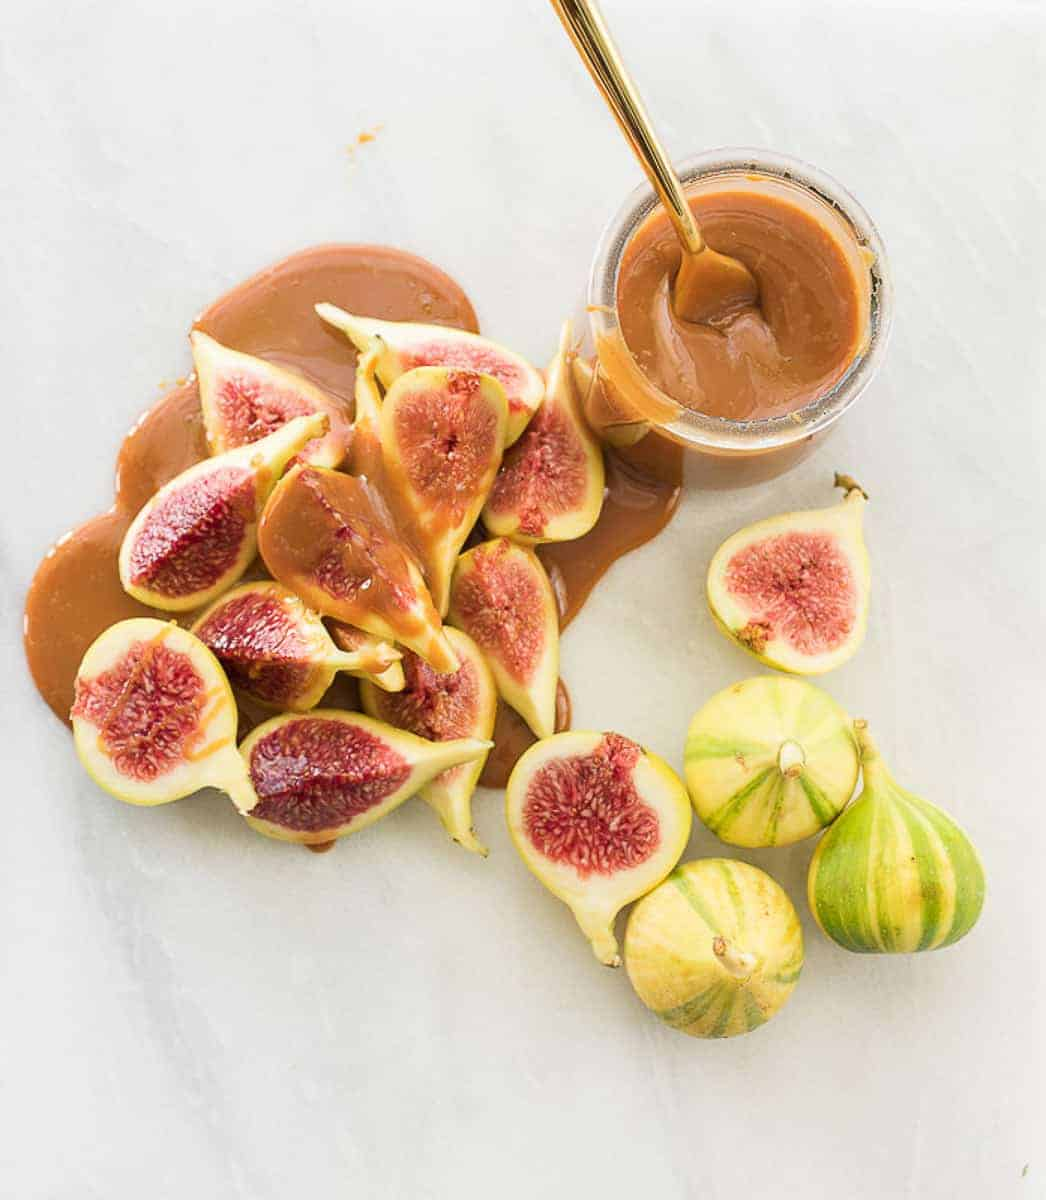 Overhead image of a pile of cut tiger-striped figs covered in cajeta from a nearby glass jar.